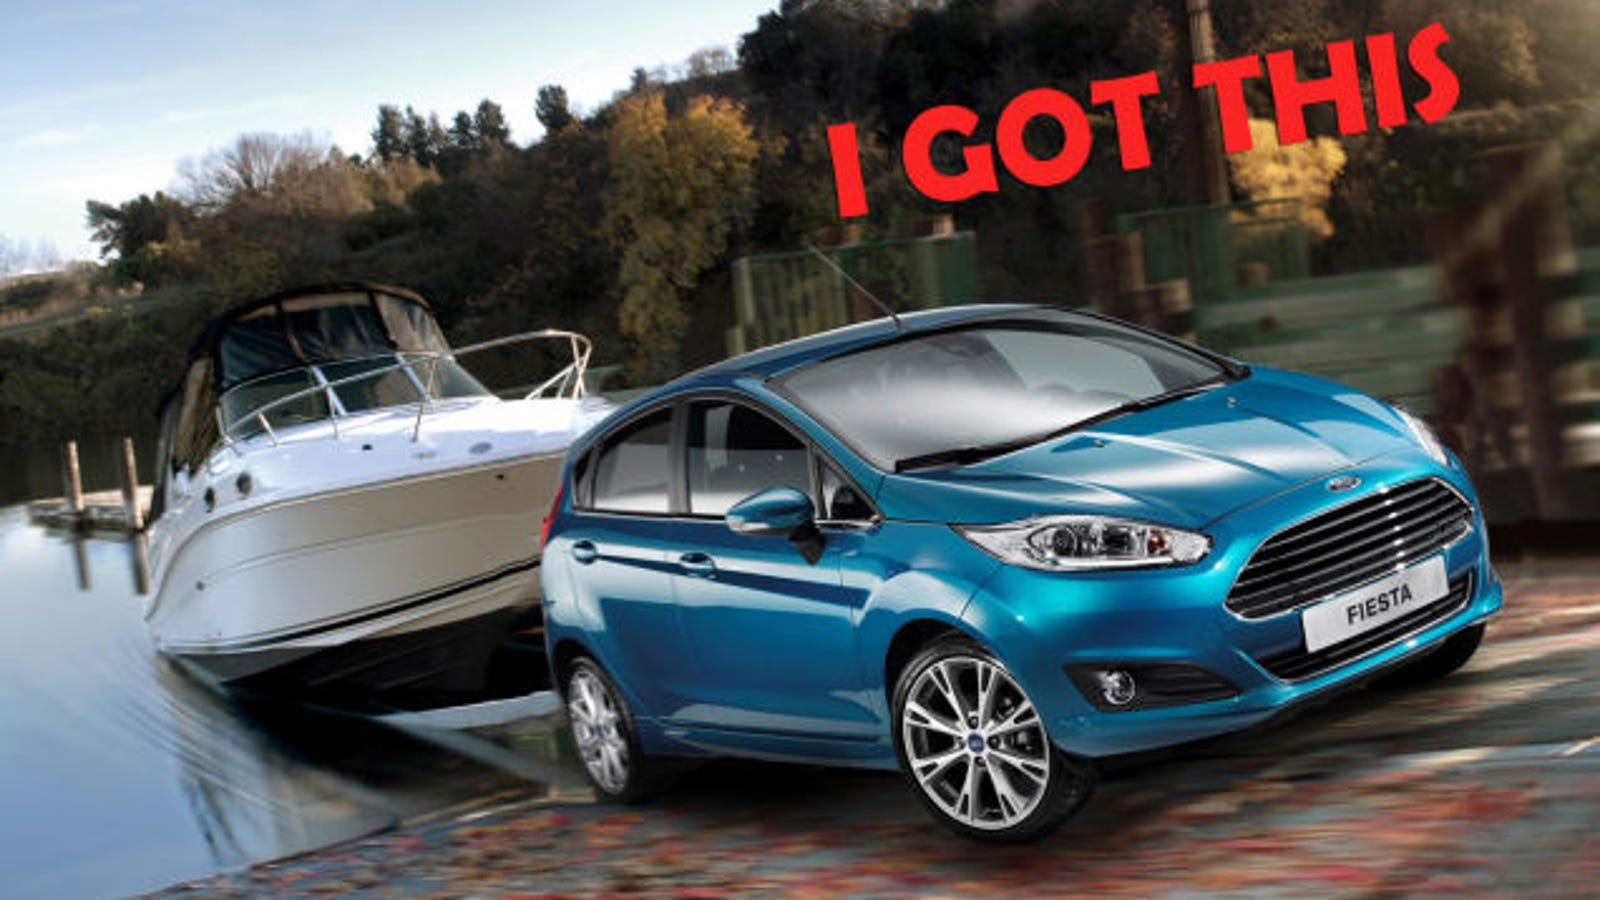 This Is Why You Need A Big Truck To Tow Things In America 2015 Ford Fiesta Bars